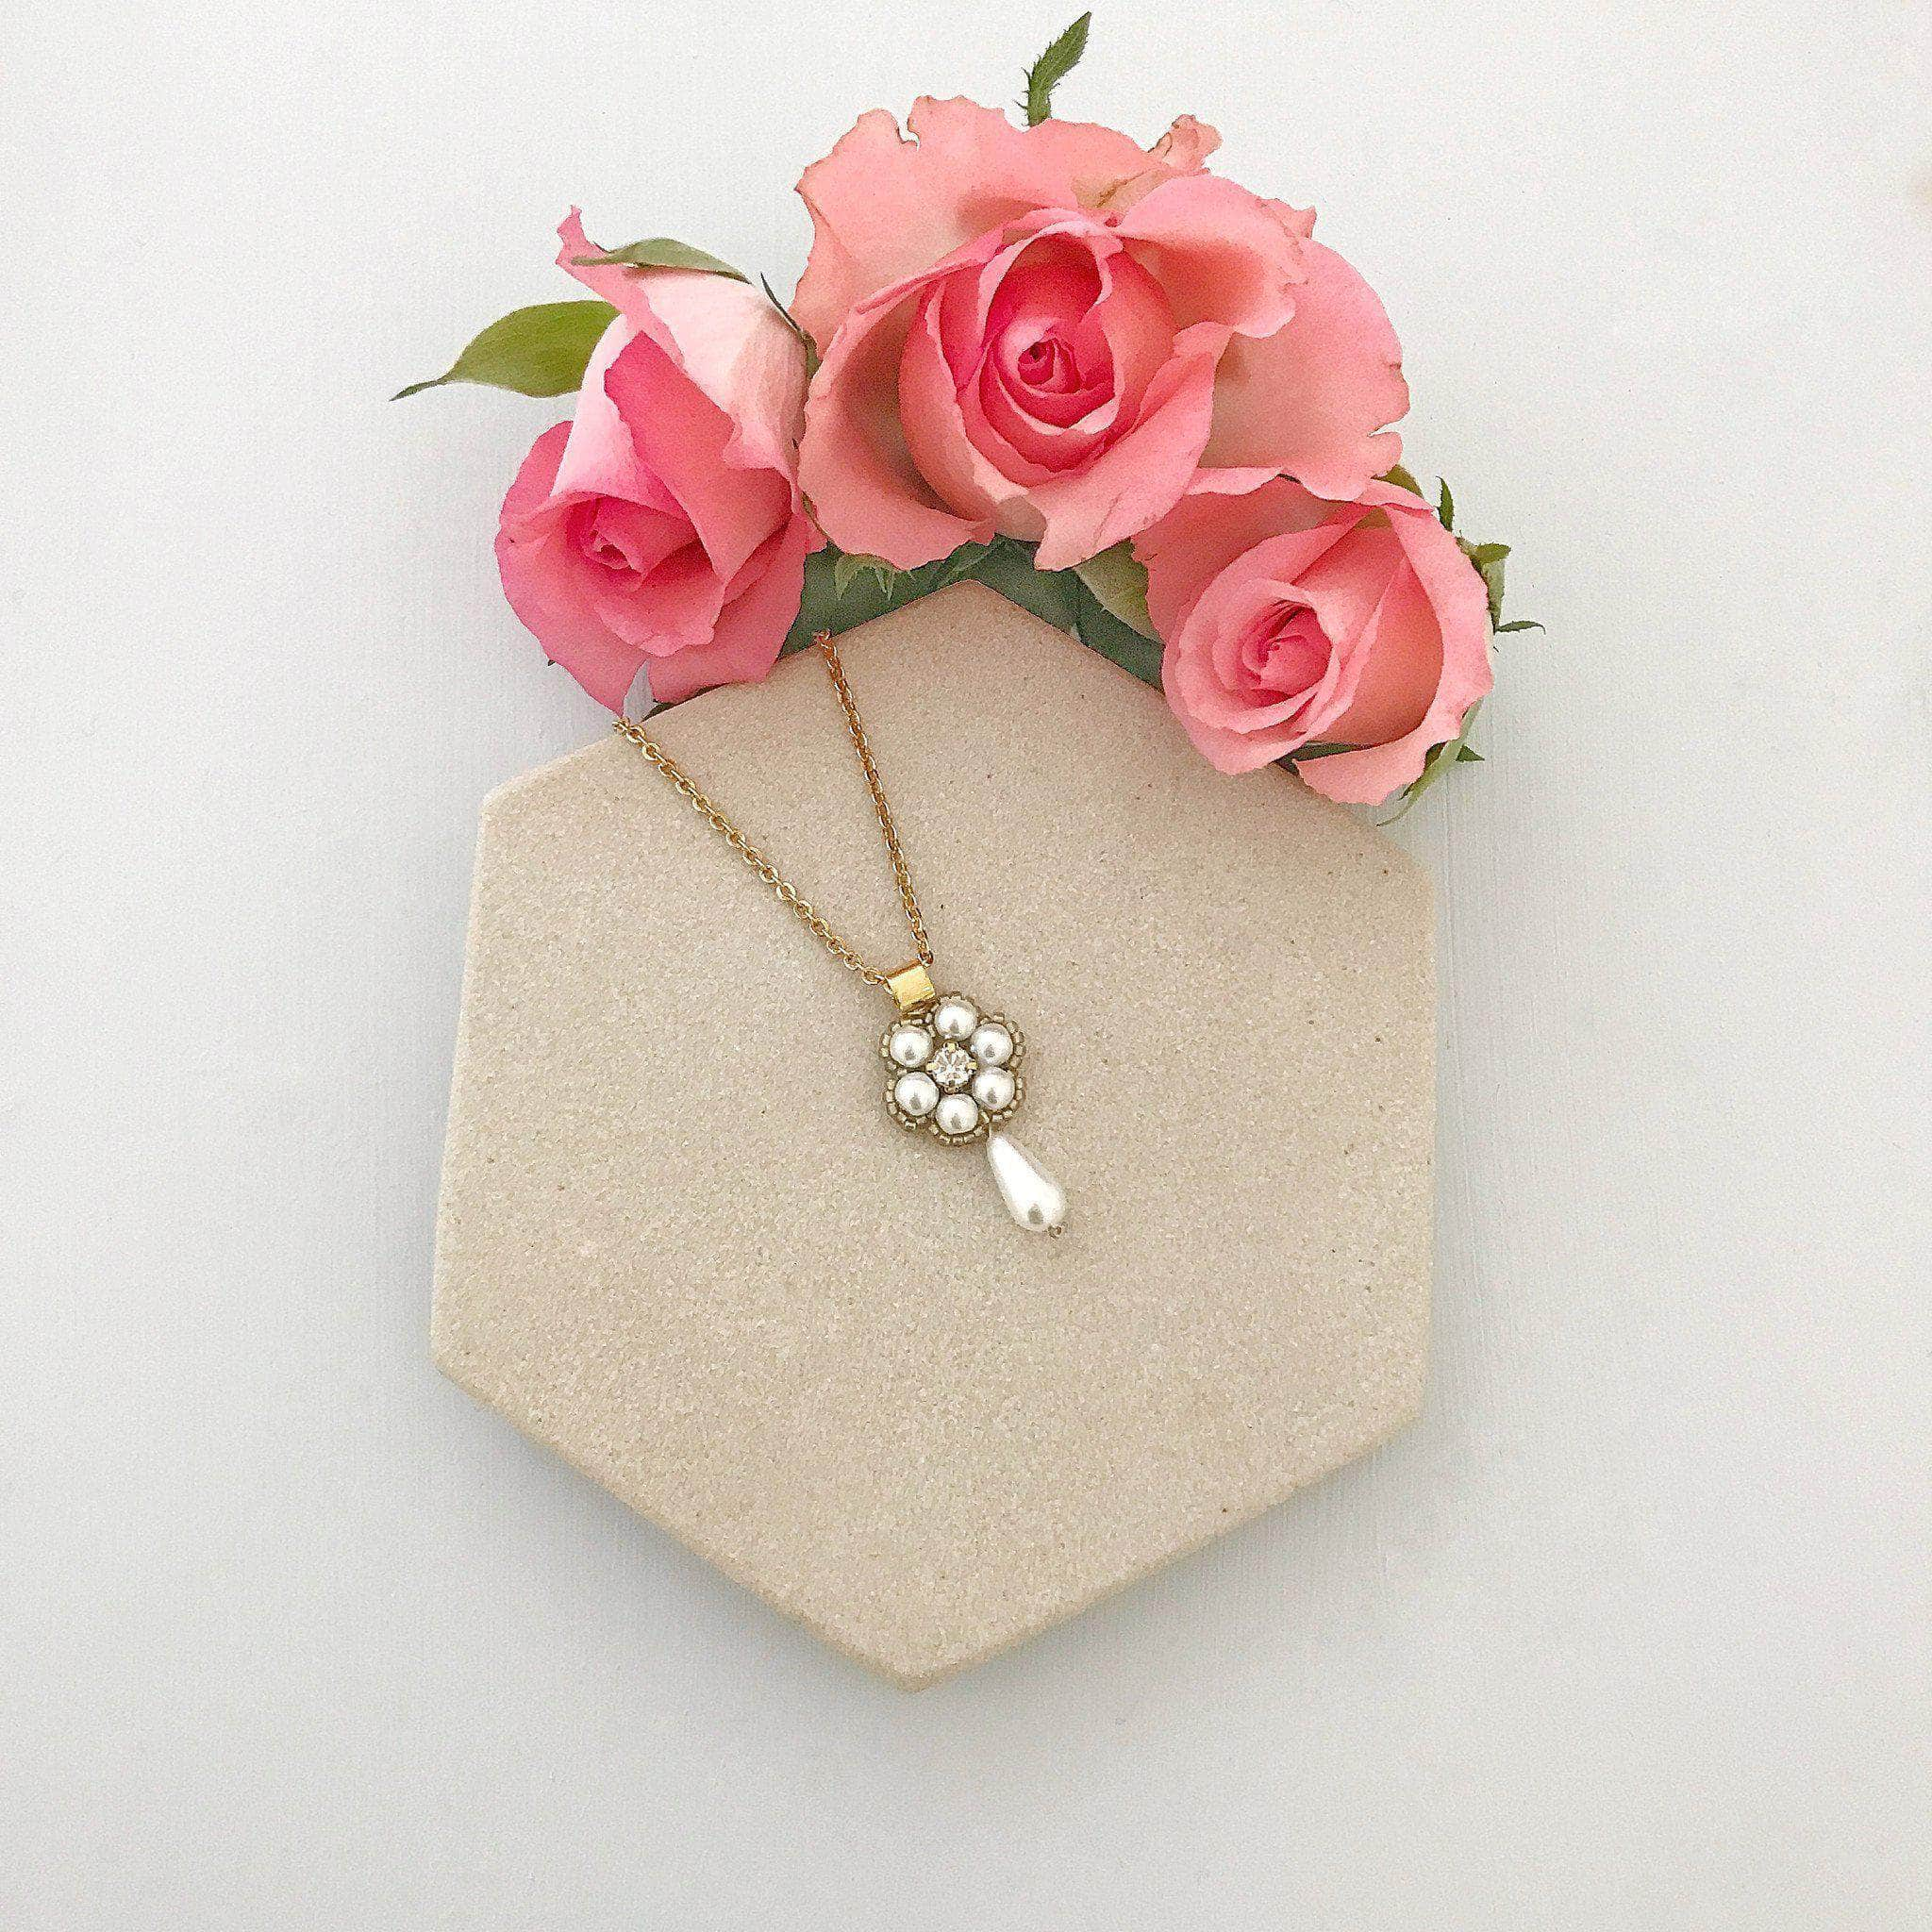 gold wedding necklace